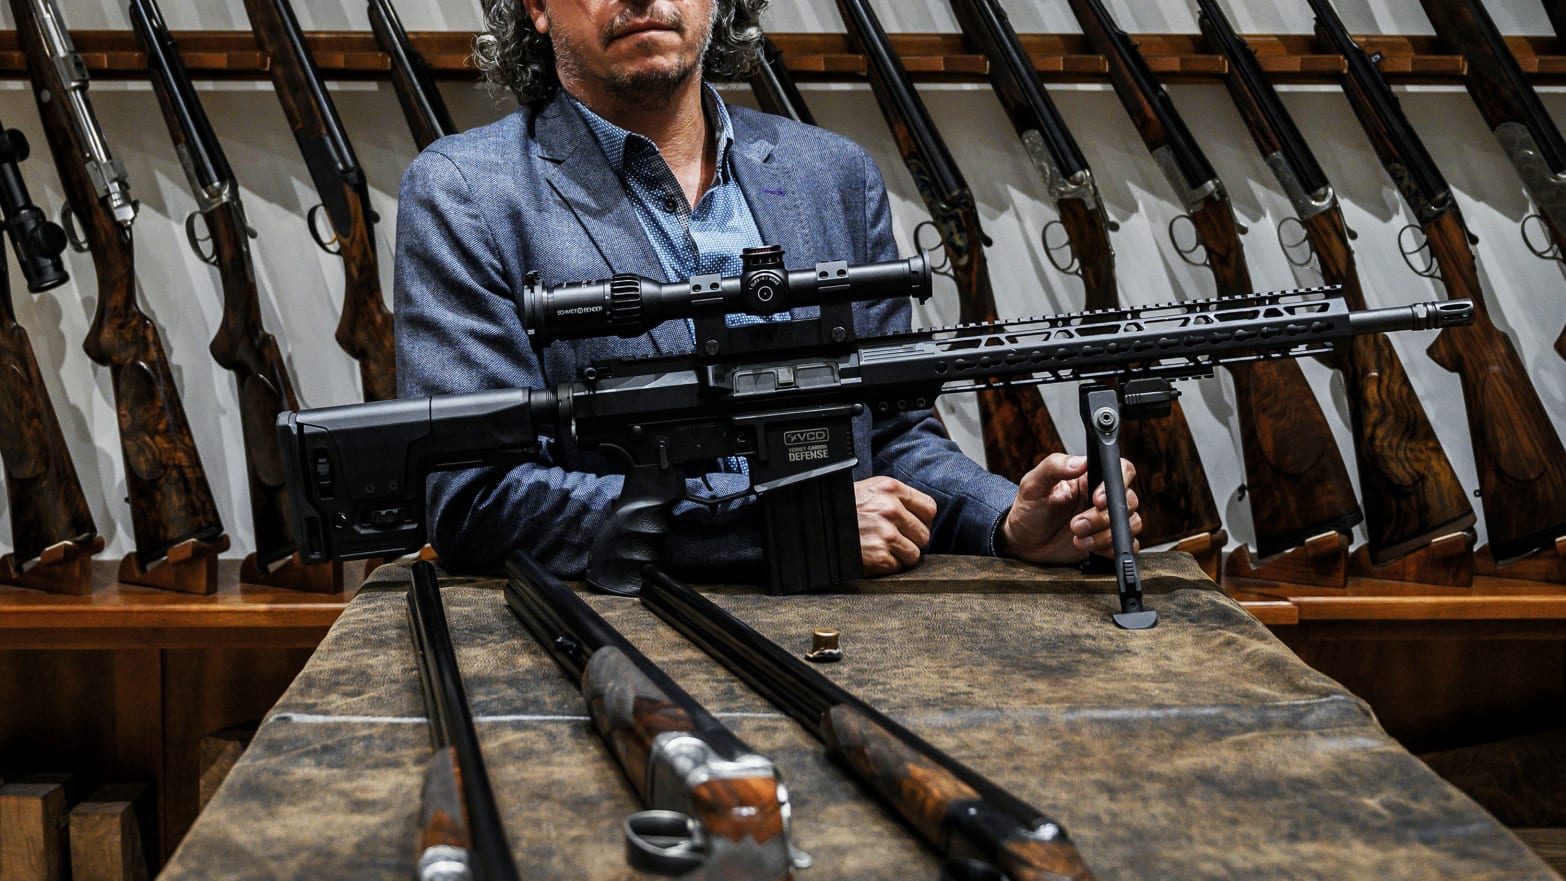 How Gunmakers Dealt Themselves a Get-Out-of-Jail Free Card